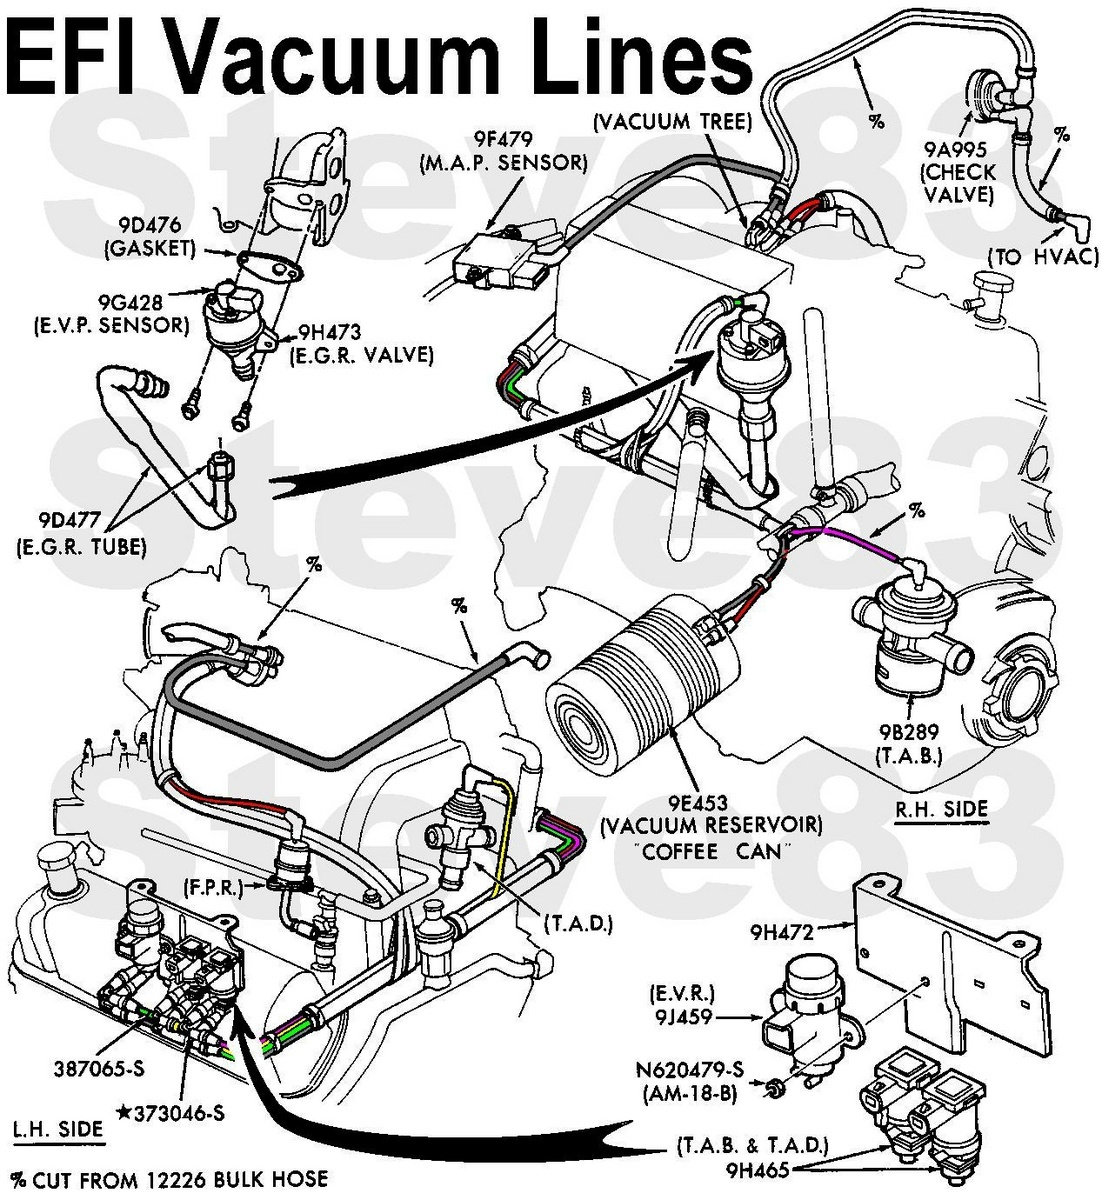 1995 jeep radio wiring diagram pdf with Ford Explorer Vacuum Line Diagram on Jeep 56ncm Wrangler X Need Stereo Wiring Diagram together with RepairGuideContent likewise Where Is The Radio Fuse On A 2001 Mustang moreover 1997 Infiniti Qx4 Wiring Diagram And Electrical System Service And Troubleshooting also 96 Taurus Fuse Box.